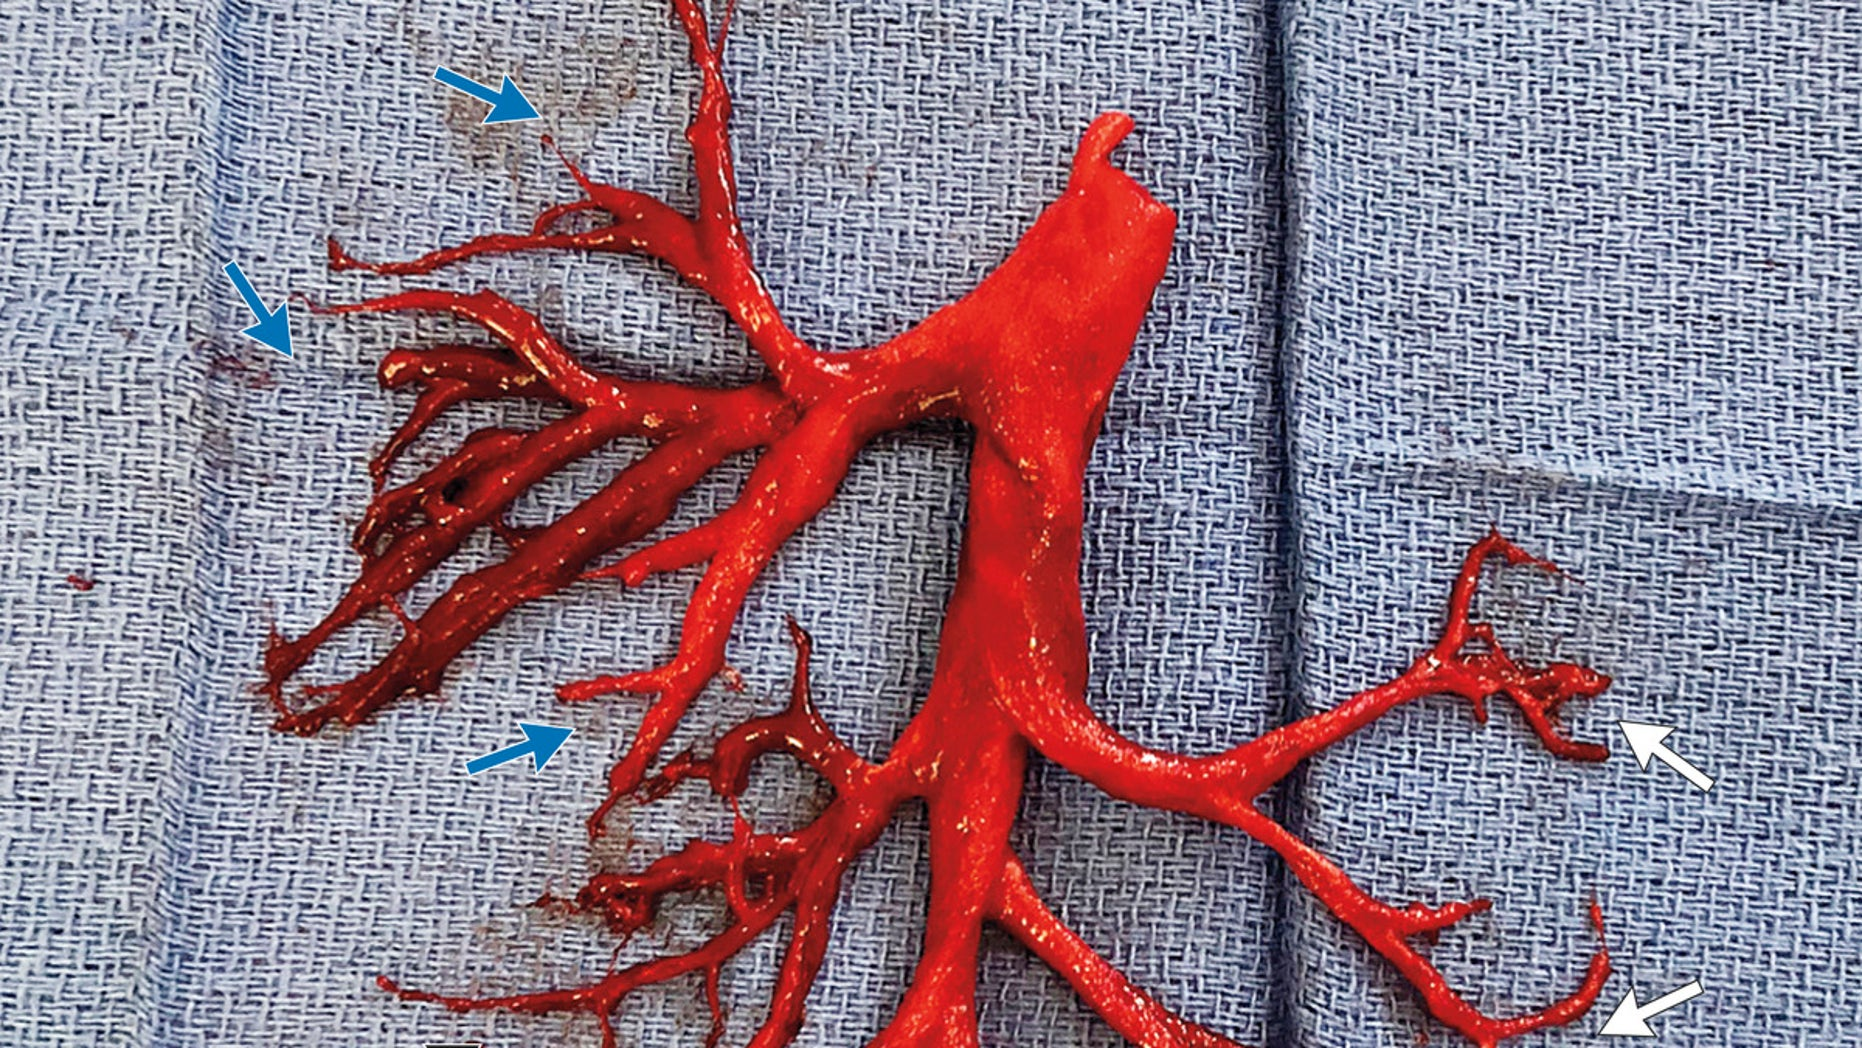 Patient coughs up blood clot shaped like lung